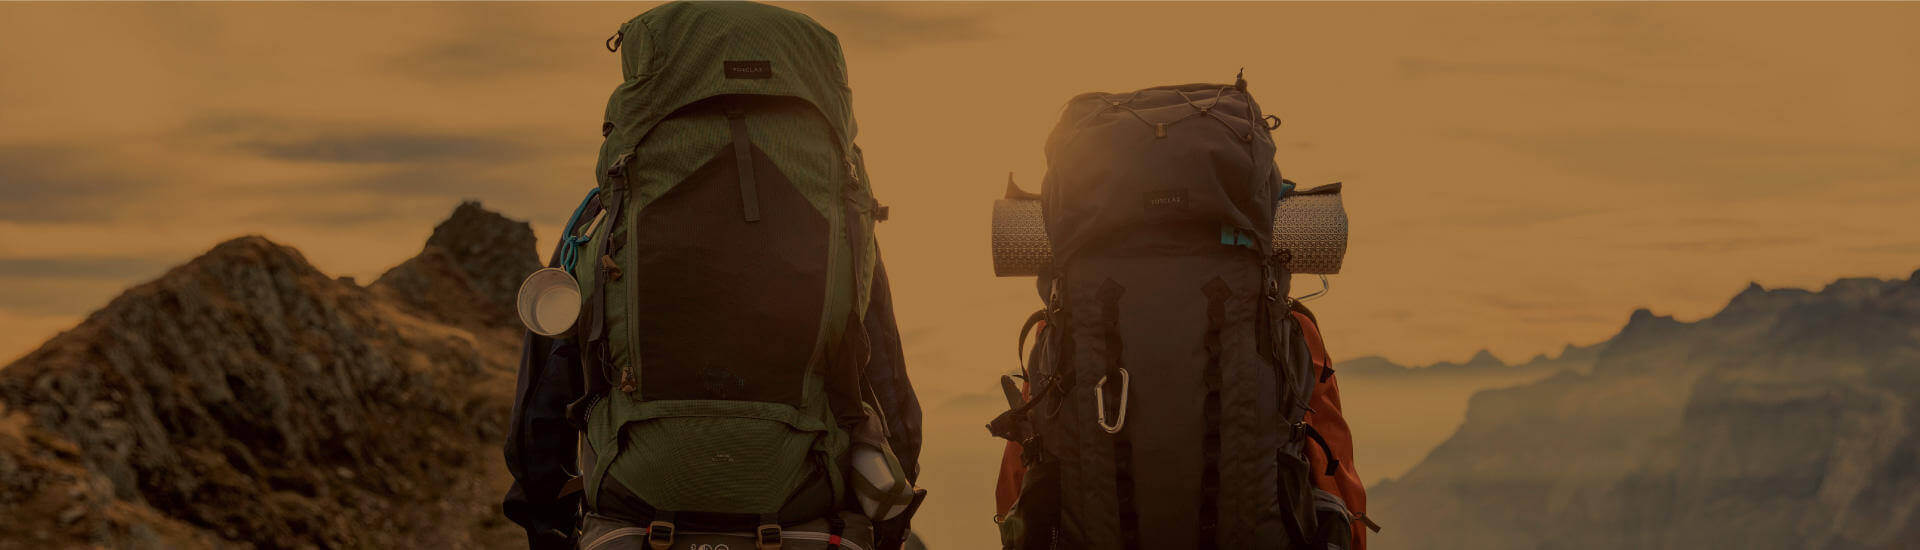 Co-Creation - The Making of Decathlon Backpacks